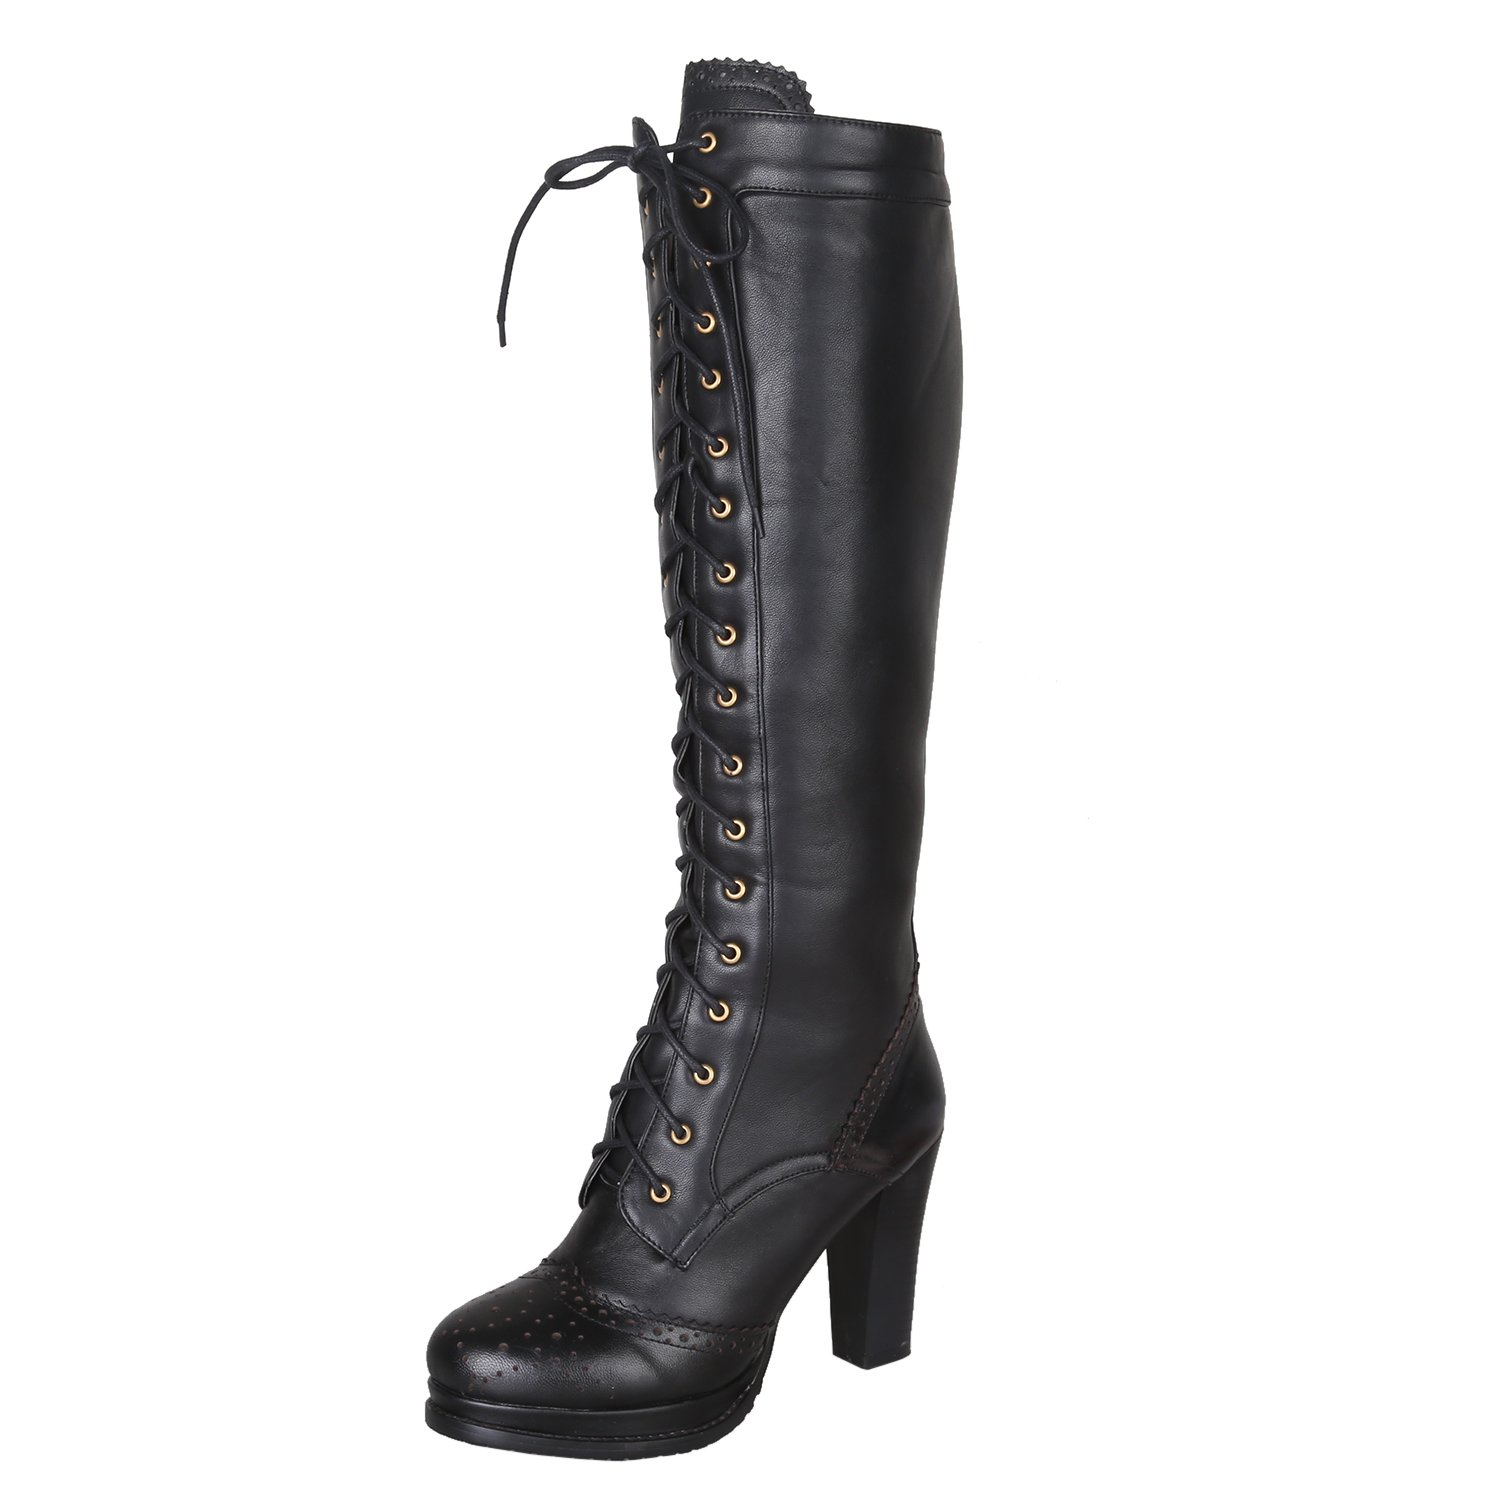 Women's Knee-High Lace-Up Thick Sole Soft Black Genuine Sheepskin Leather Boots - DeluxeAdultCostumes.com